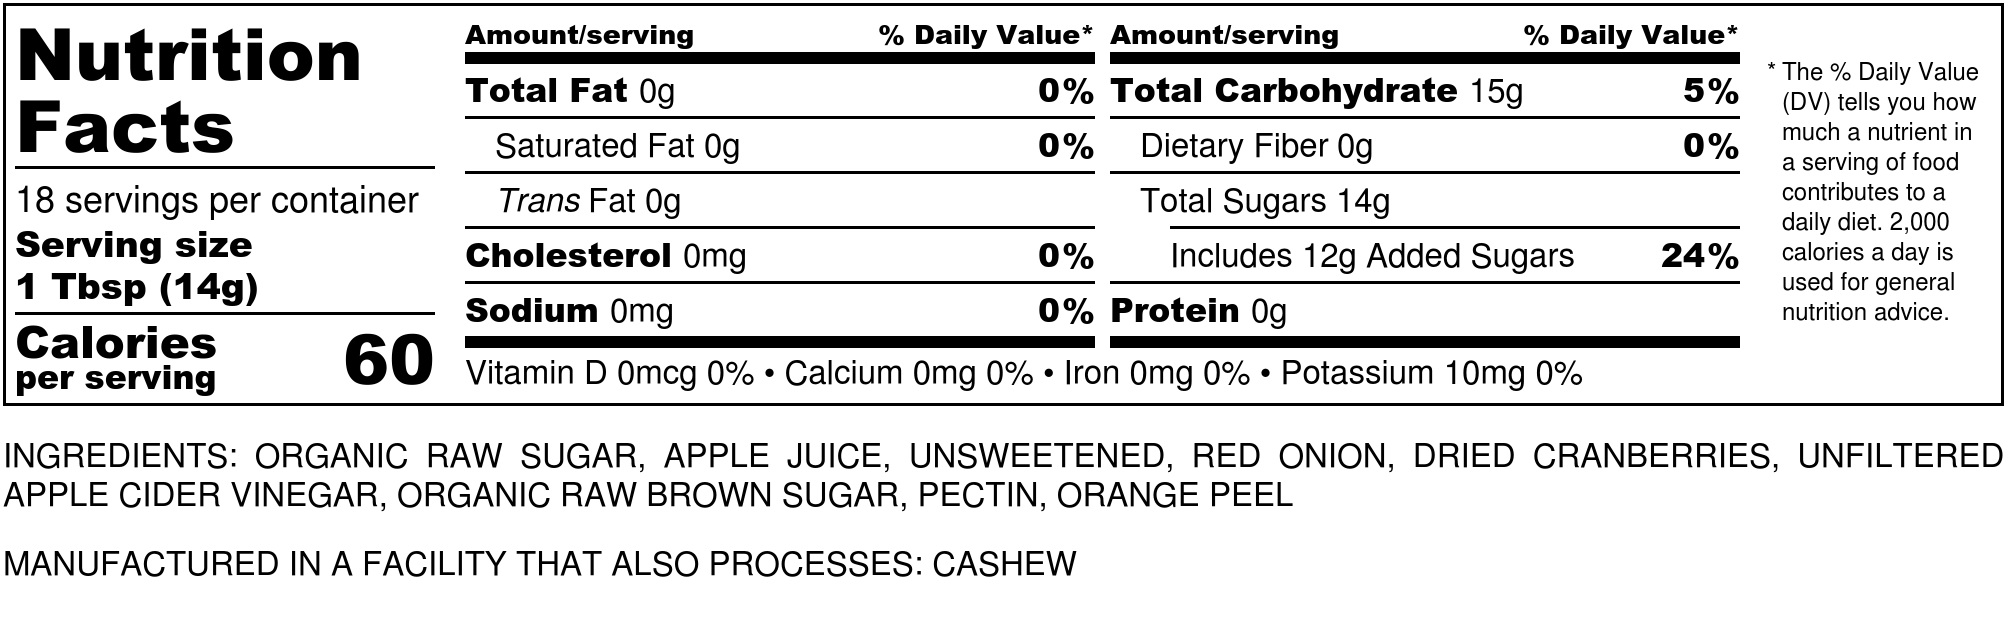 Red Onion Marmalade - Nutrition Label.jpg